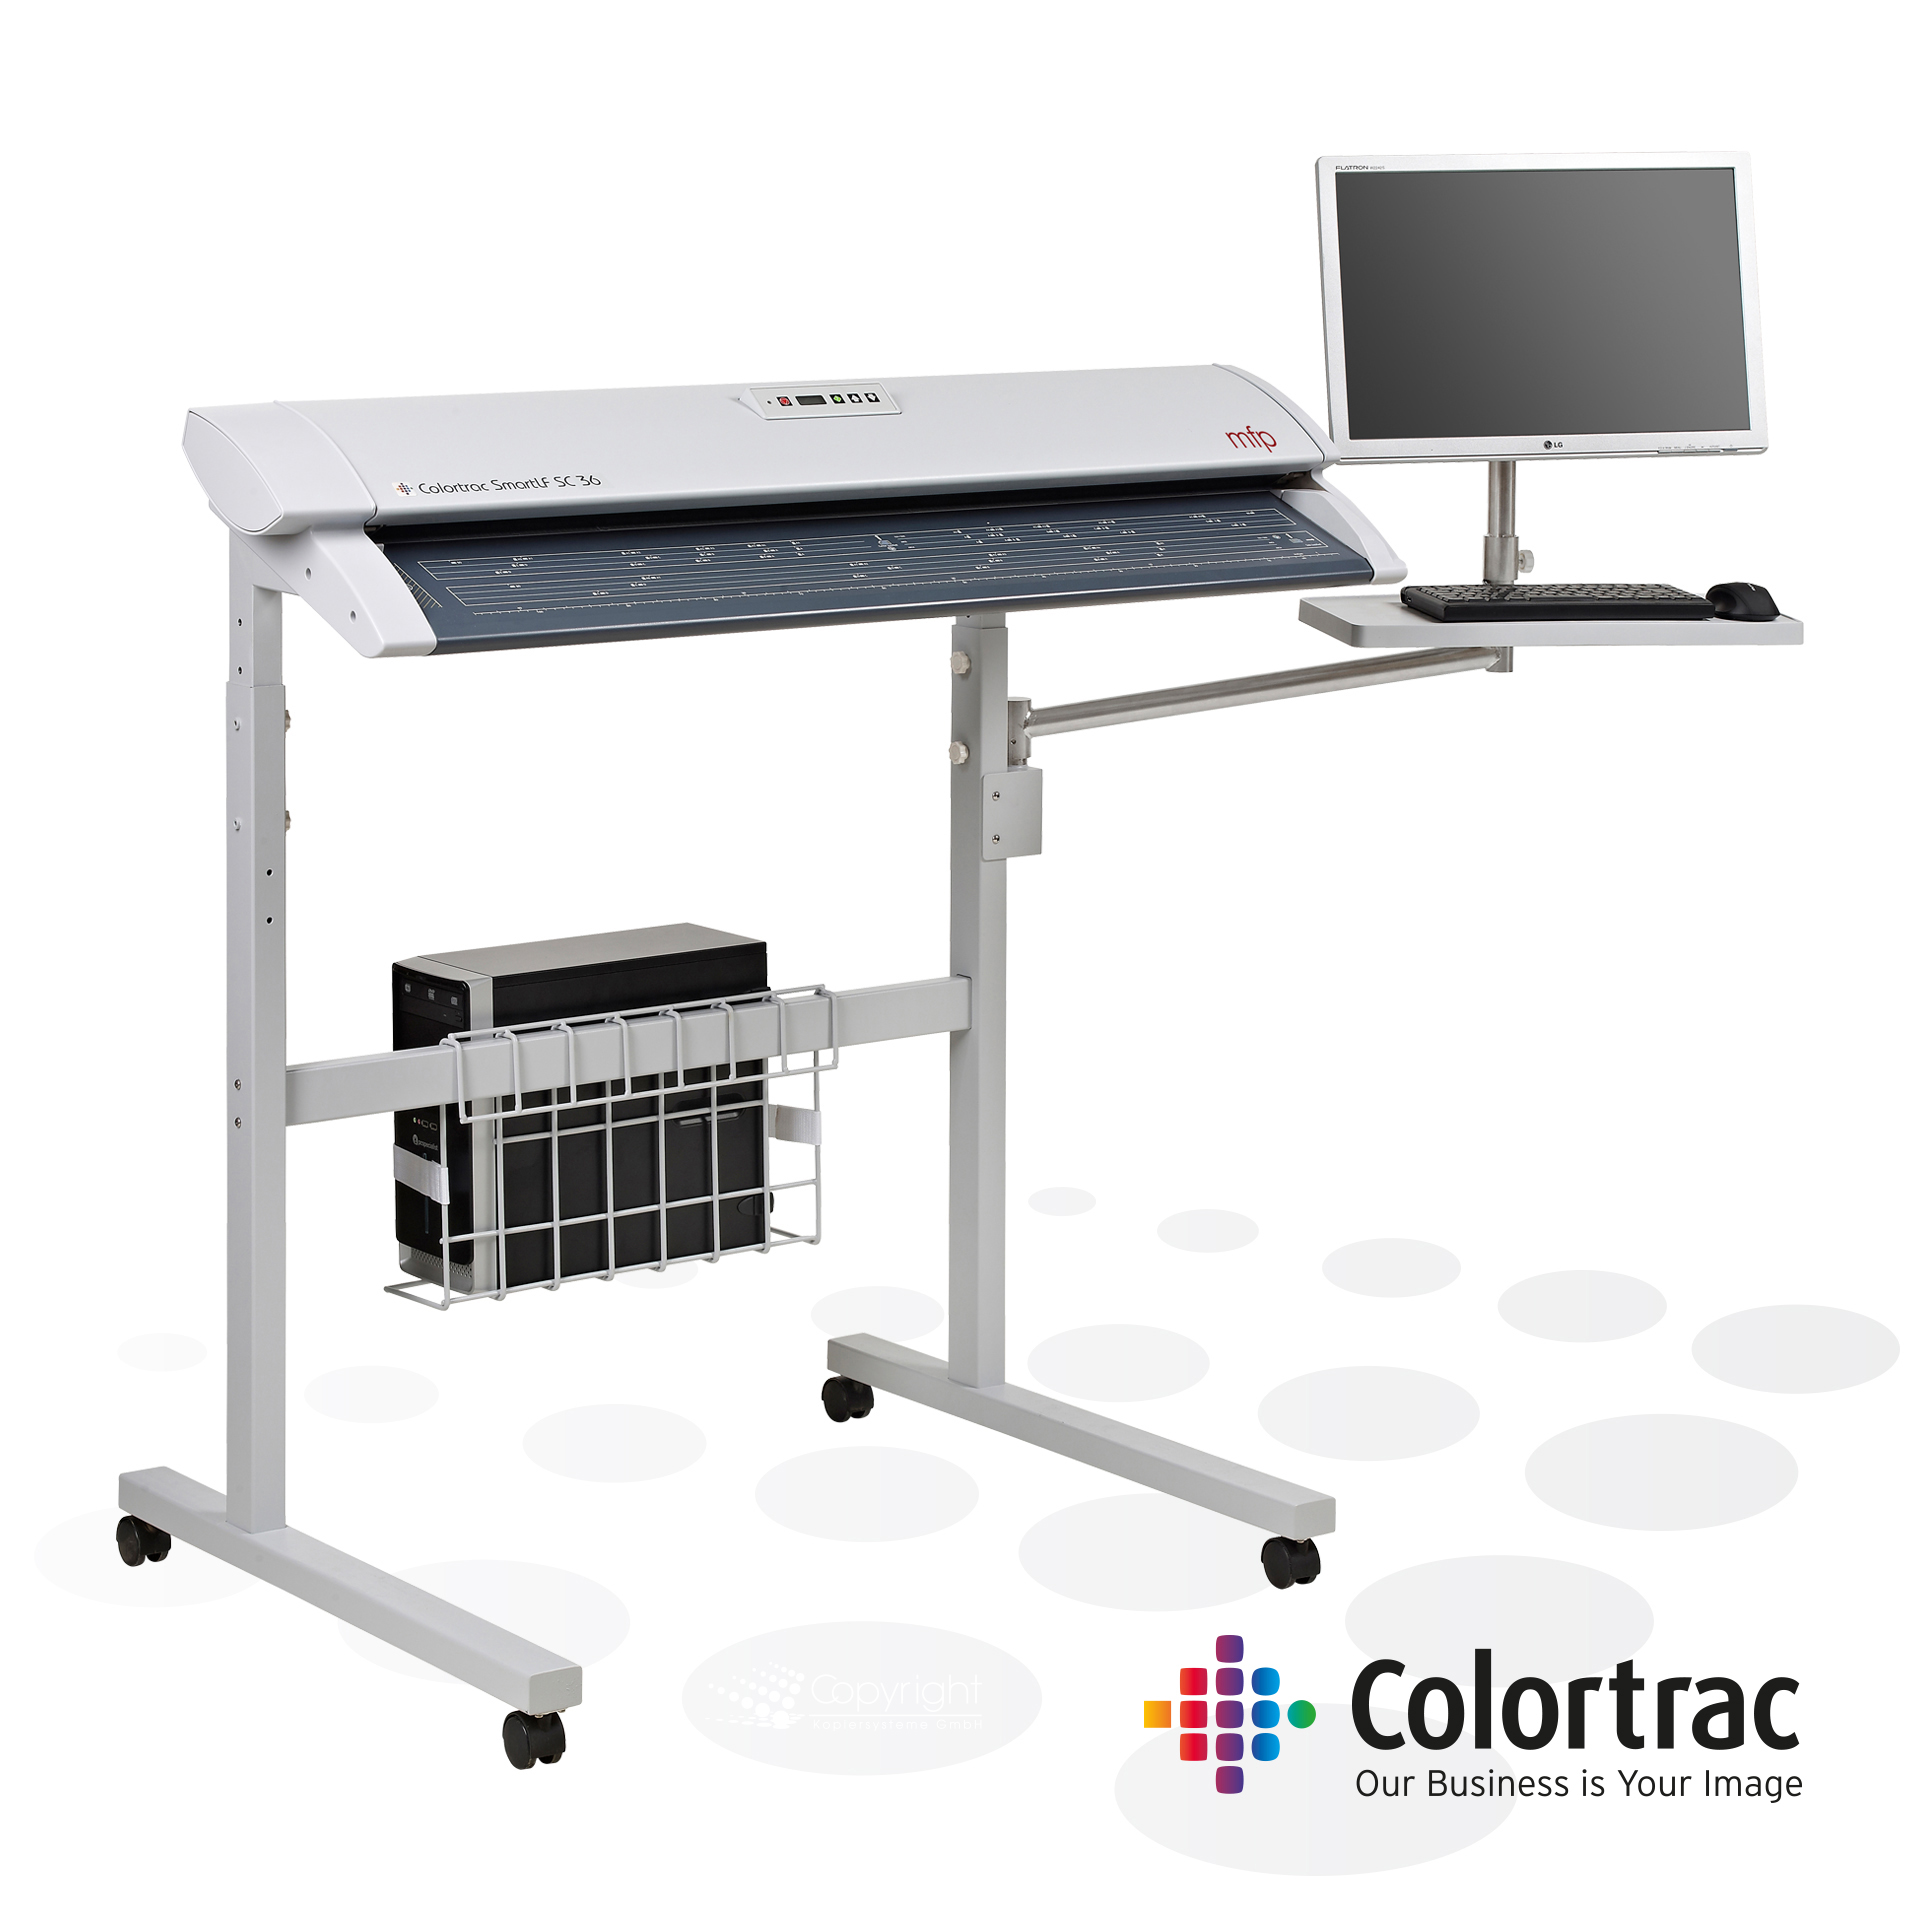 Colortrac SmartLF Scanner SC Xpress36 MFP